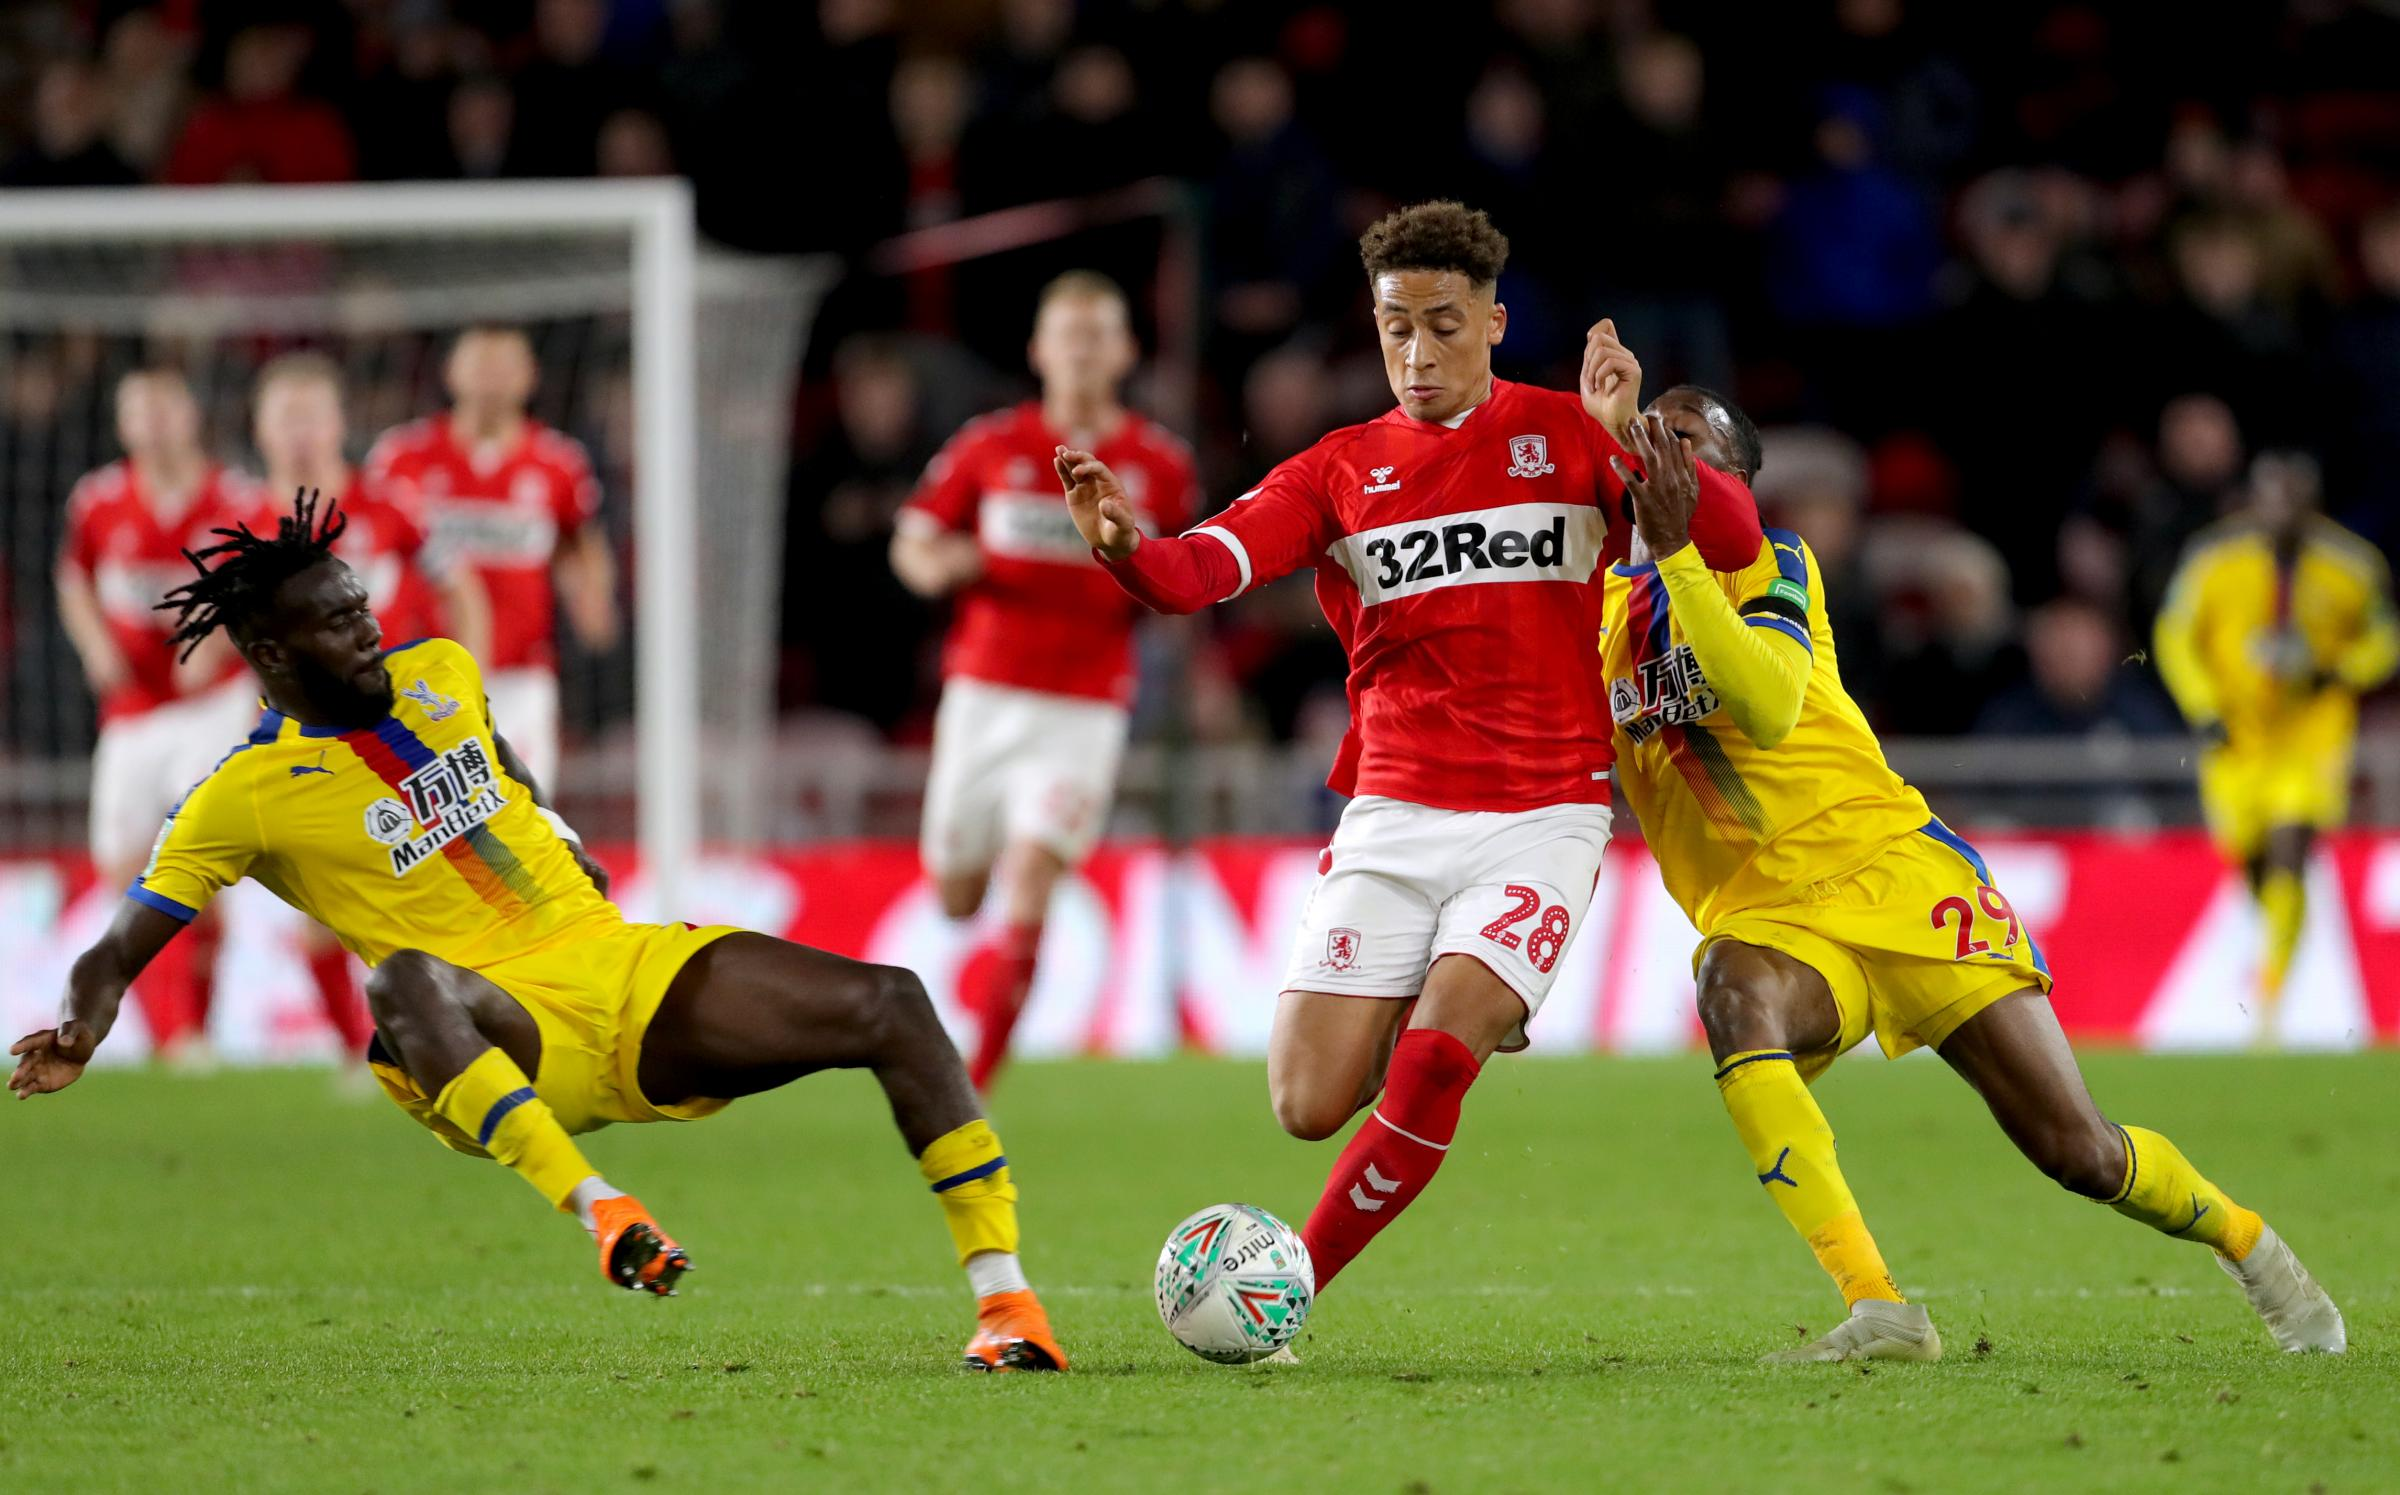 Middlesbrough's Marcus Tavernier (centre) battles for the ball with Crystal Palace's Aaron Wan-Bissaka (right) and Pape Souare (pic: Richard Sellers/PA Wire/PA Images)